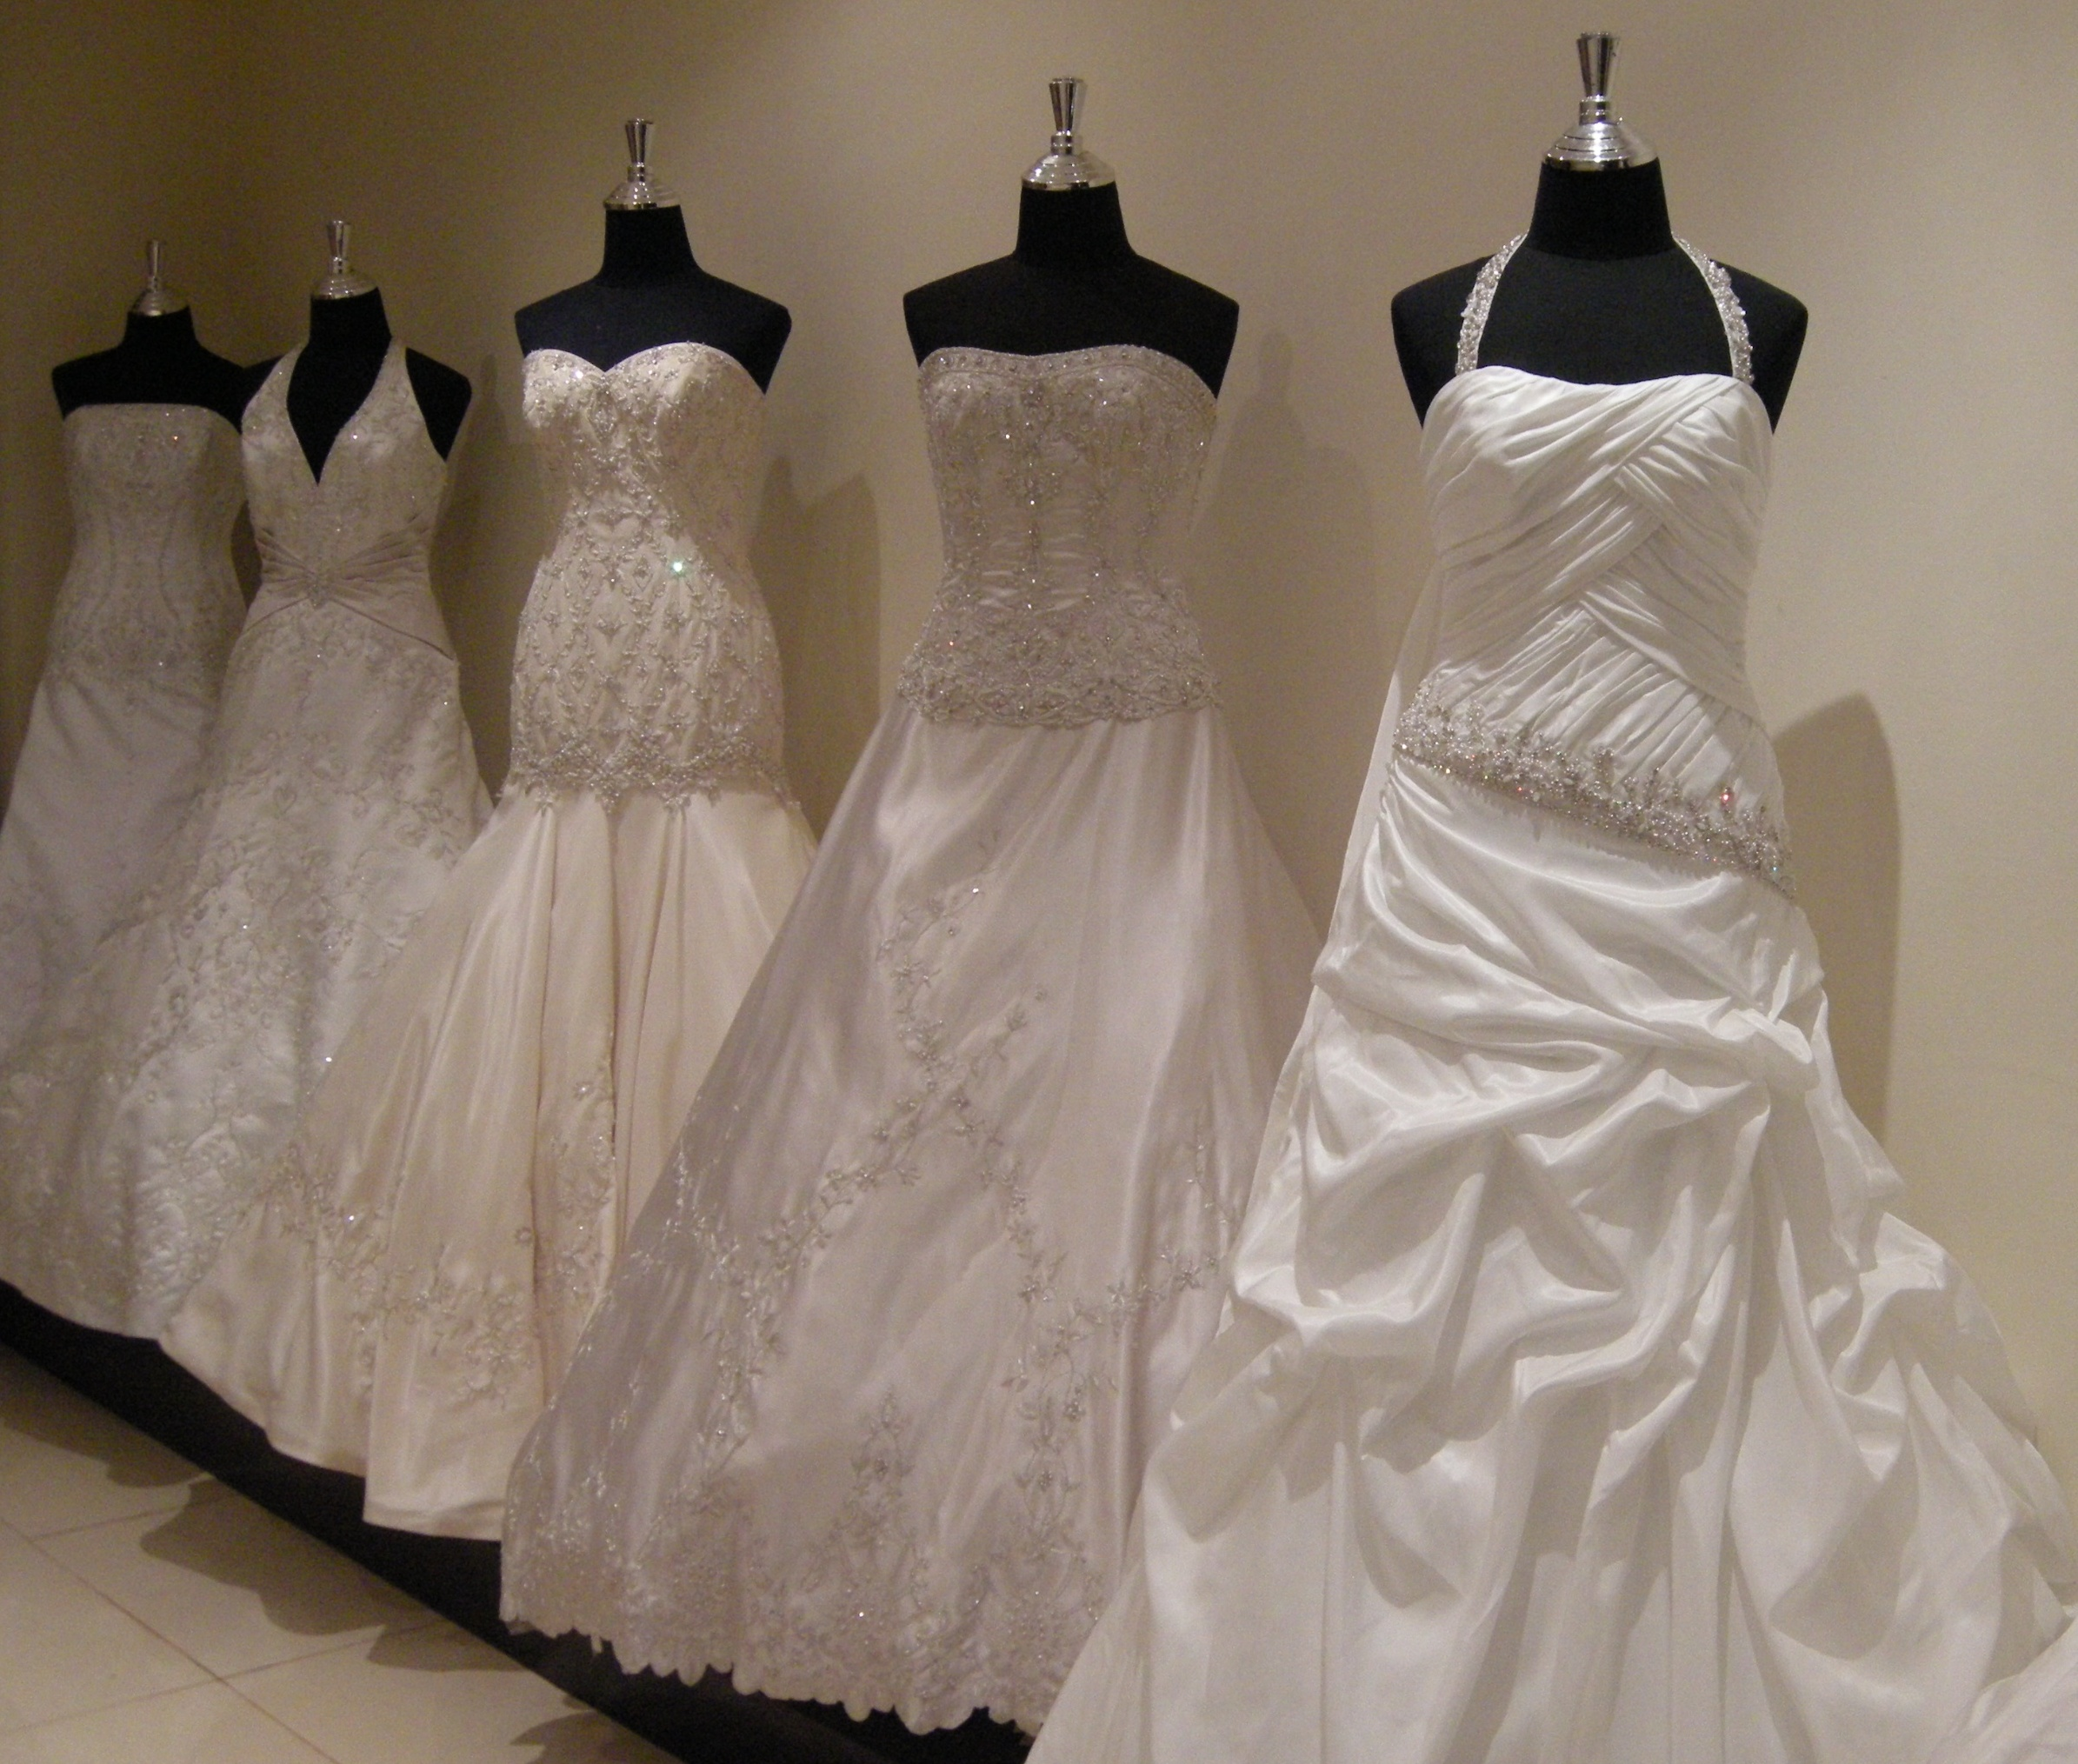 Wedding Dresses For   At China Mall Johannesburg : Durban fashion couturier launches style scoop daily